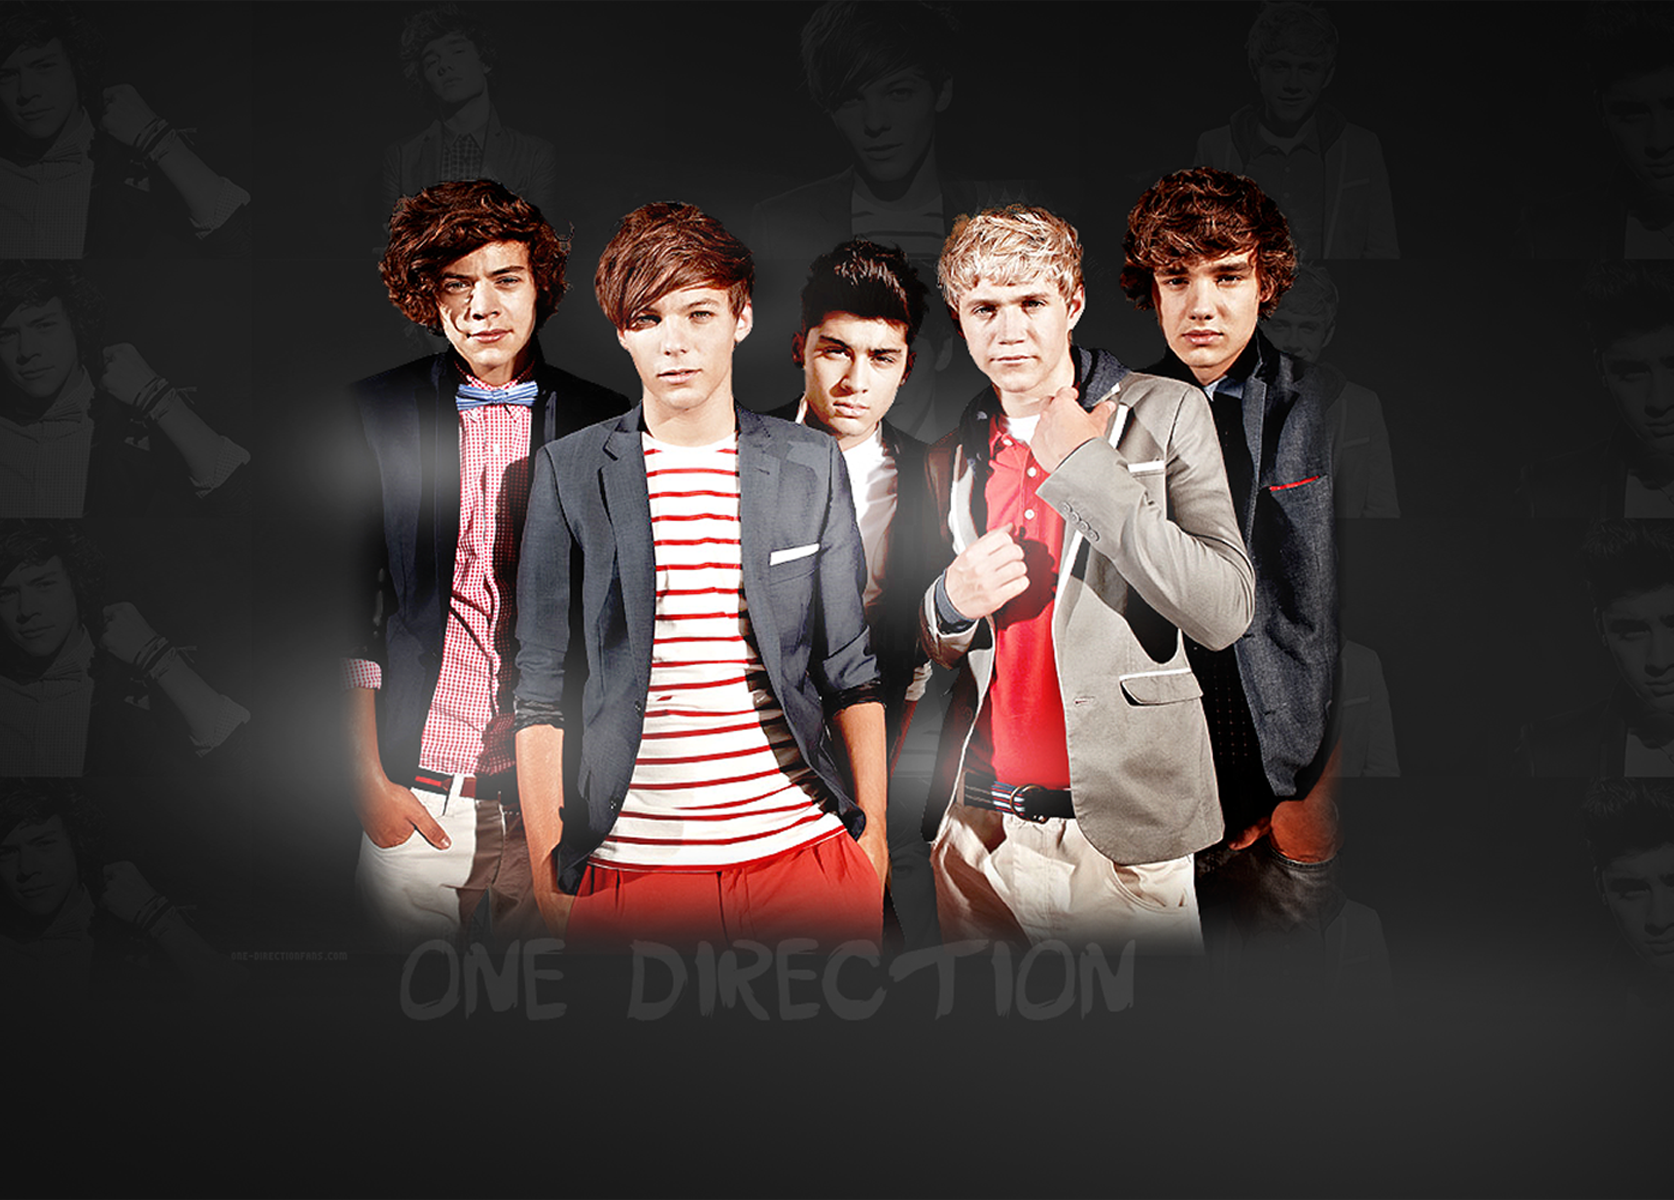 One direction 2014 wallpaper for tablet best hd wallpaper one direction source download one direction wallpapers free gallery voltagebd Choice Image